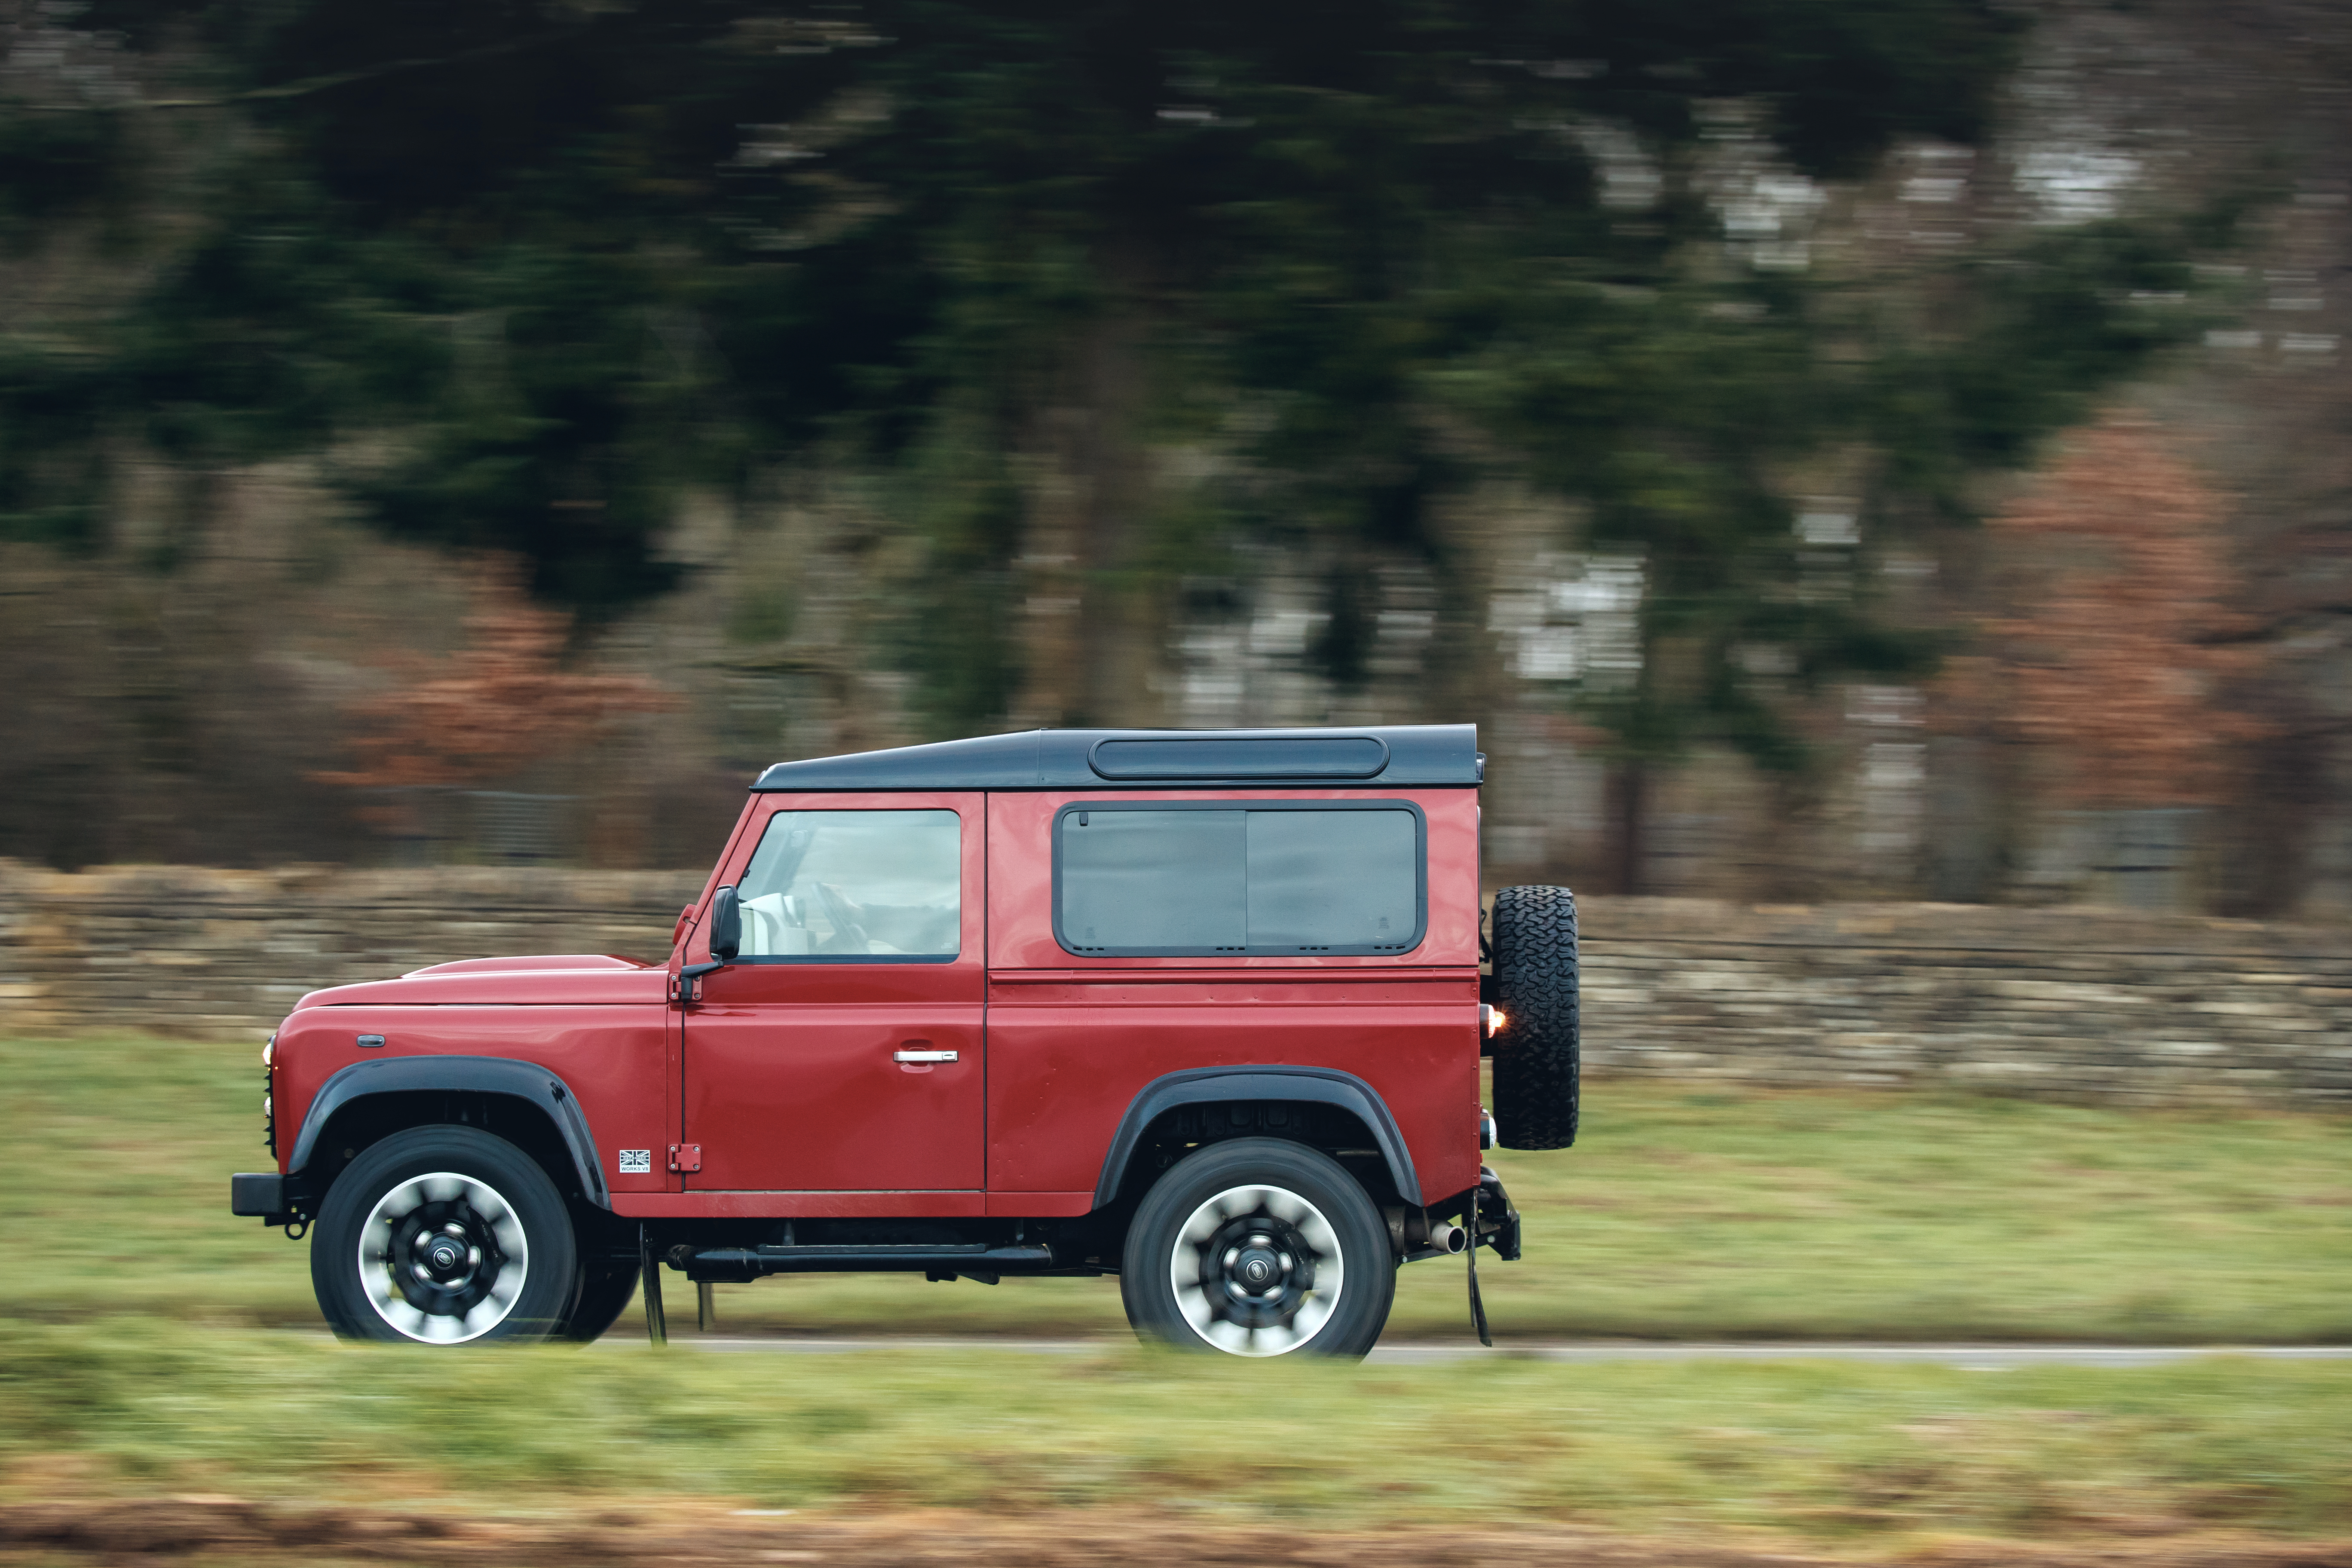 DEFENDER LIVES ON: LAND ROVER LAUNCHES V8 EDITION TO